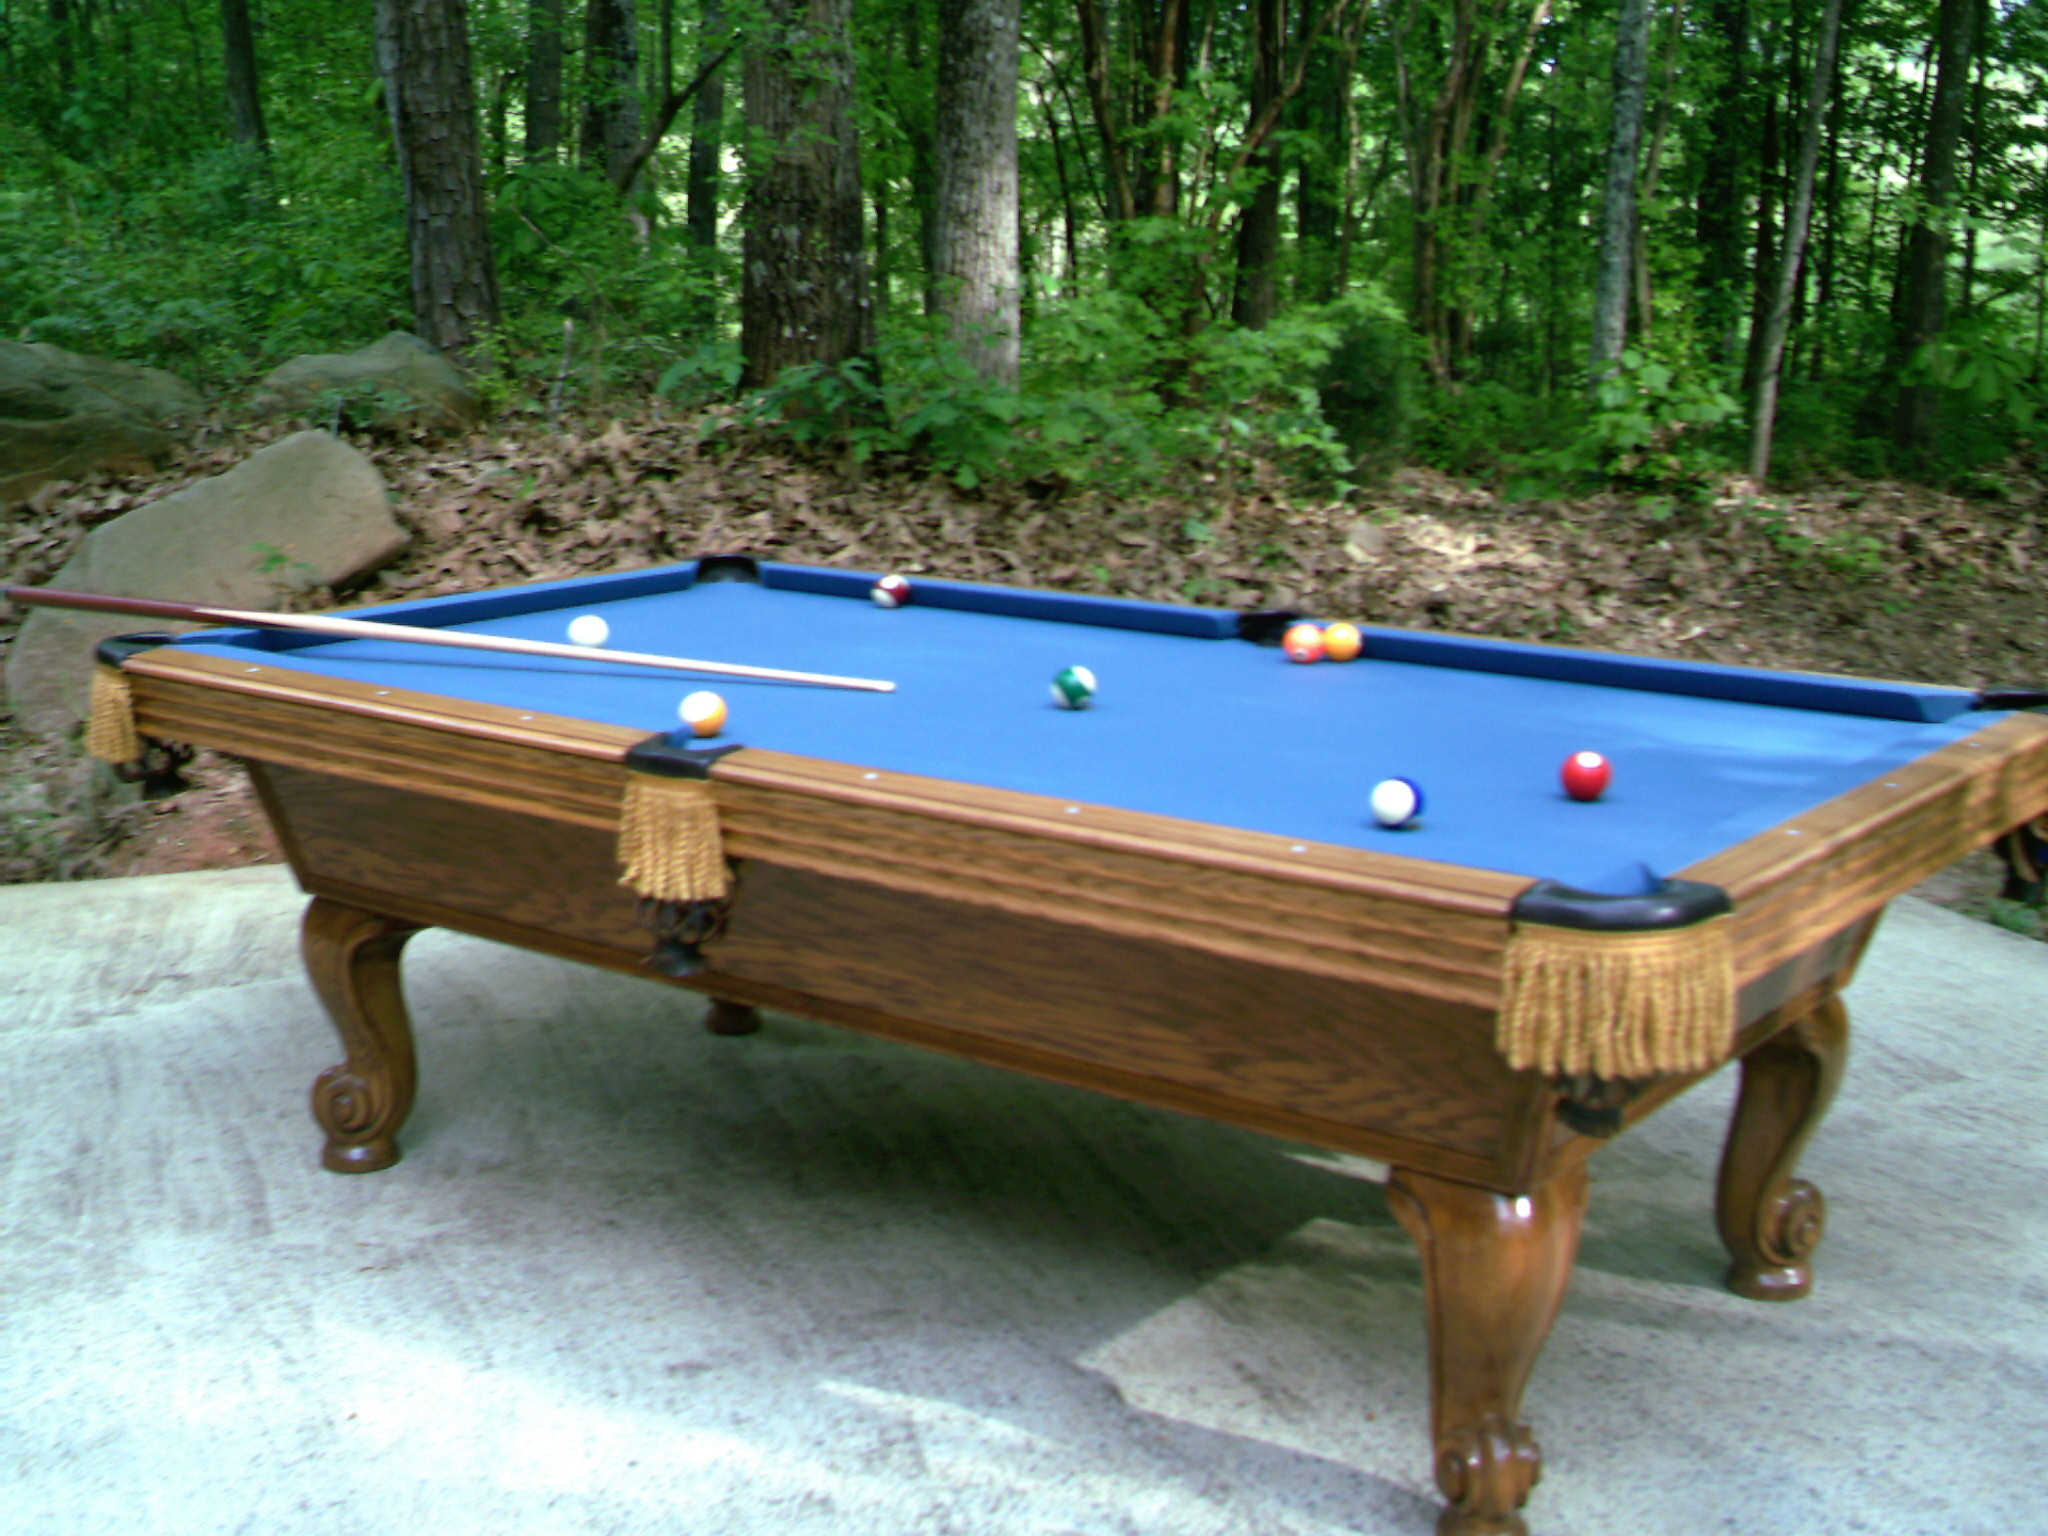 Pool Table Slate Atlanta Georgia Used - Pool table movers denver